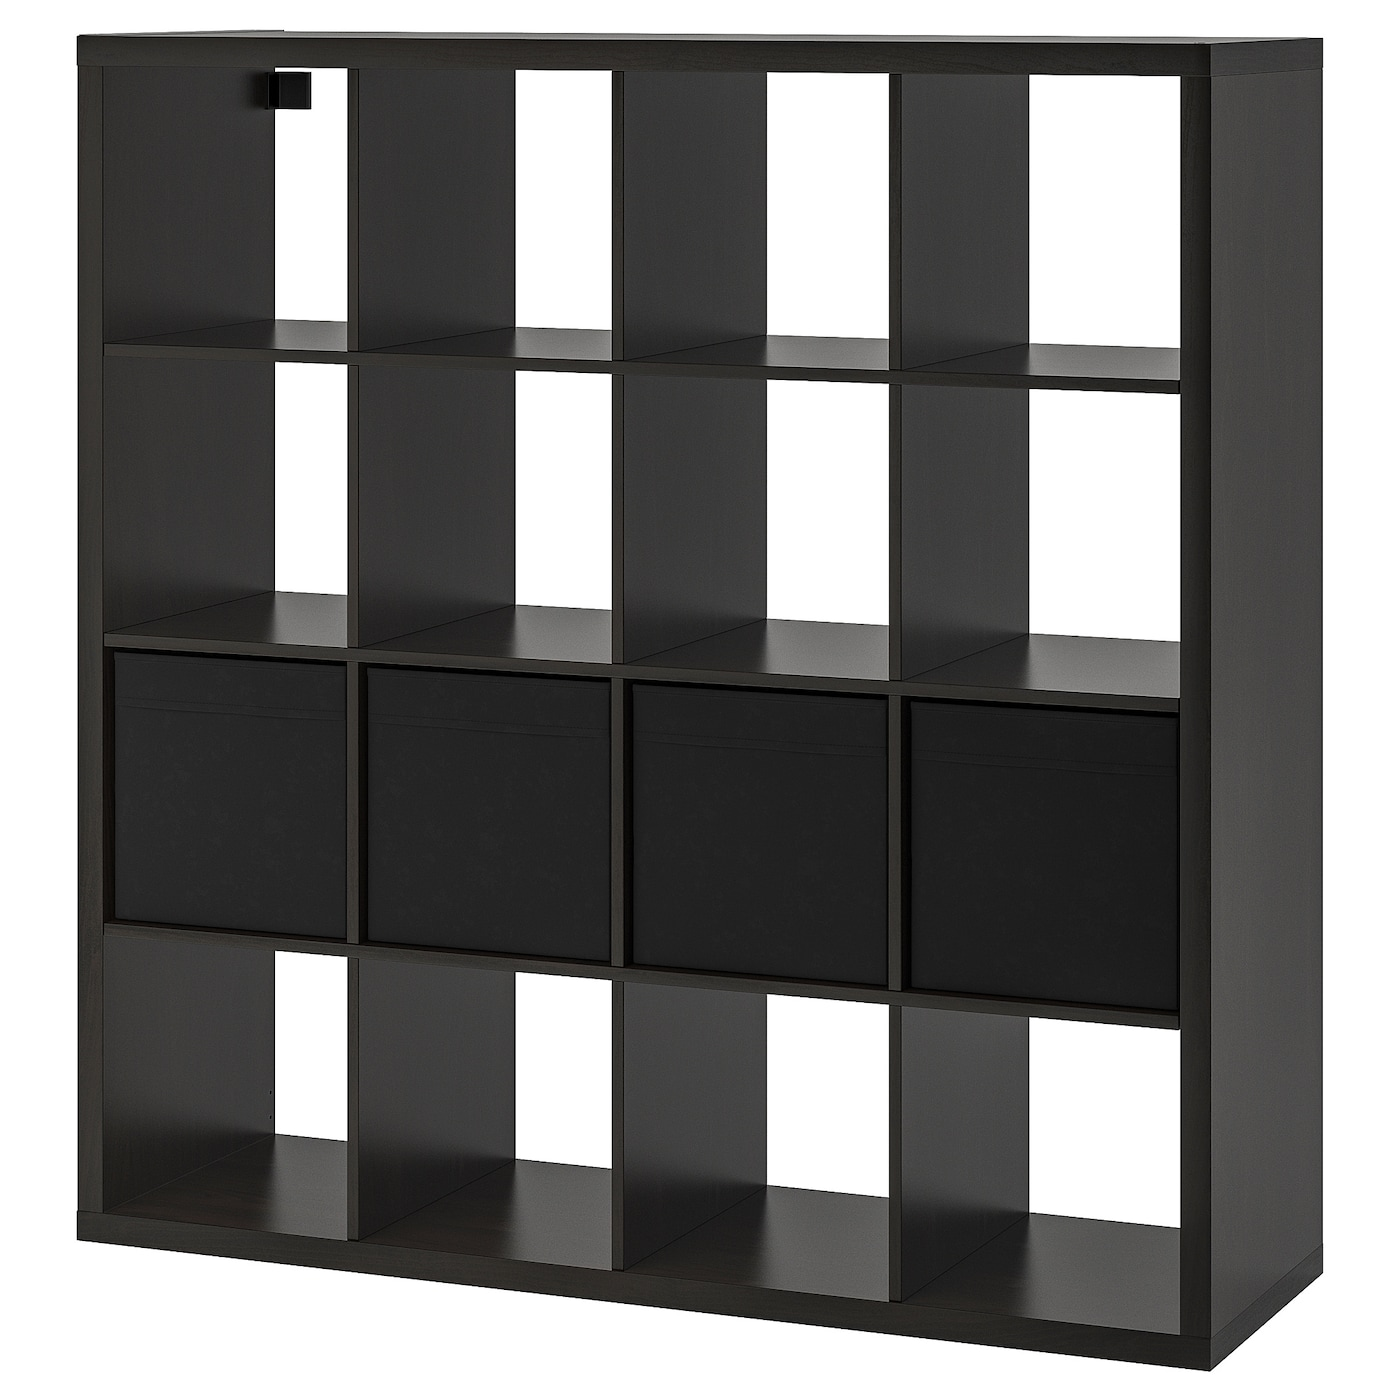 Backless Bookshelves IKEA KALLAX shelving unit with 4 inserts